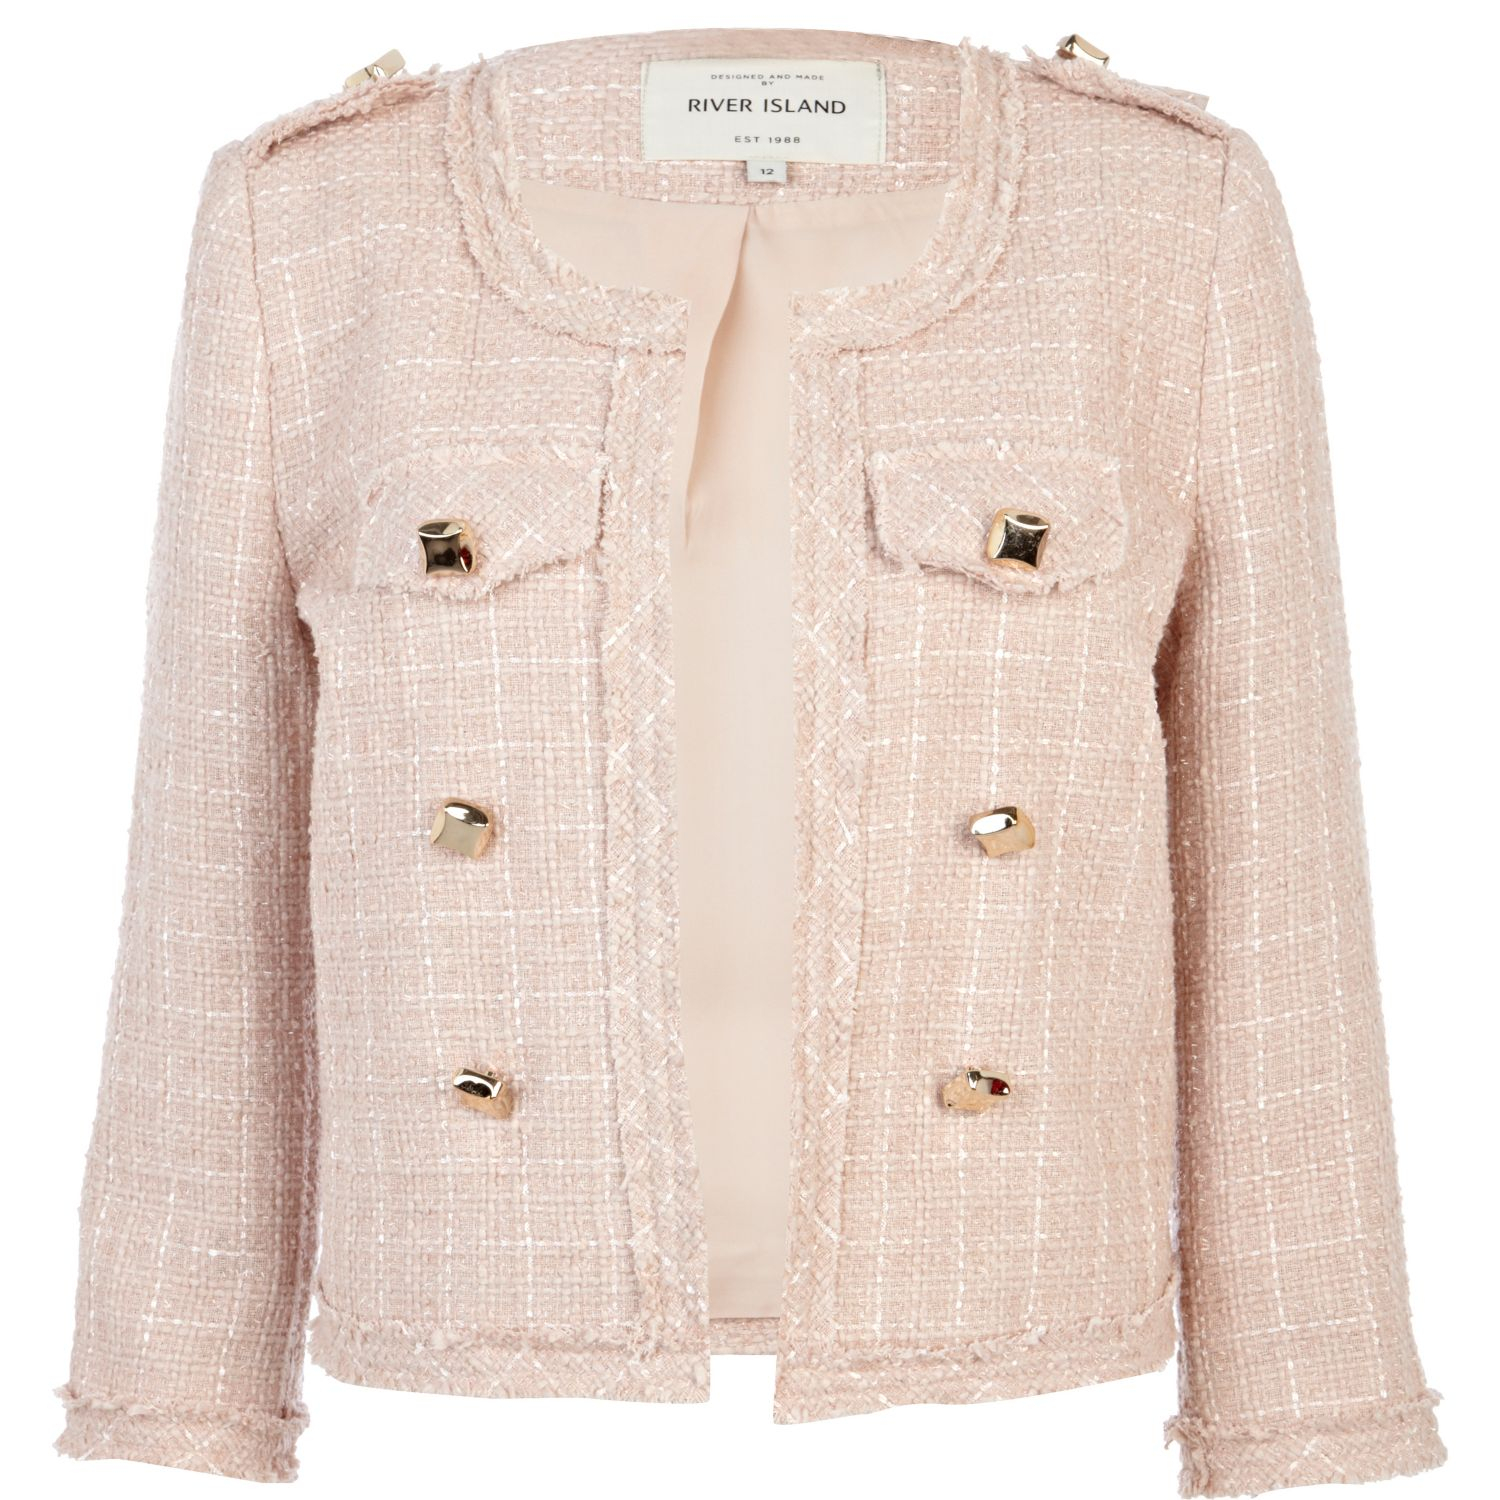 Lyst - River island Pink Boucle Stud Cropped Military Jacket in Pink